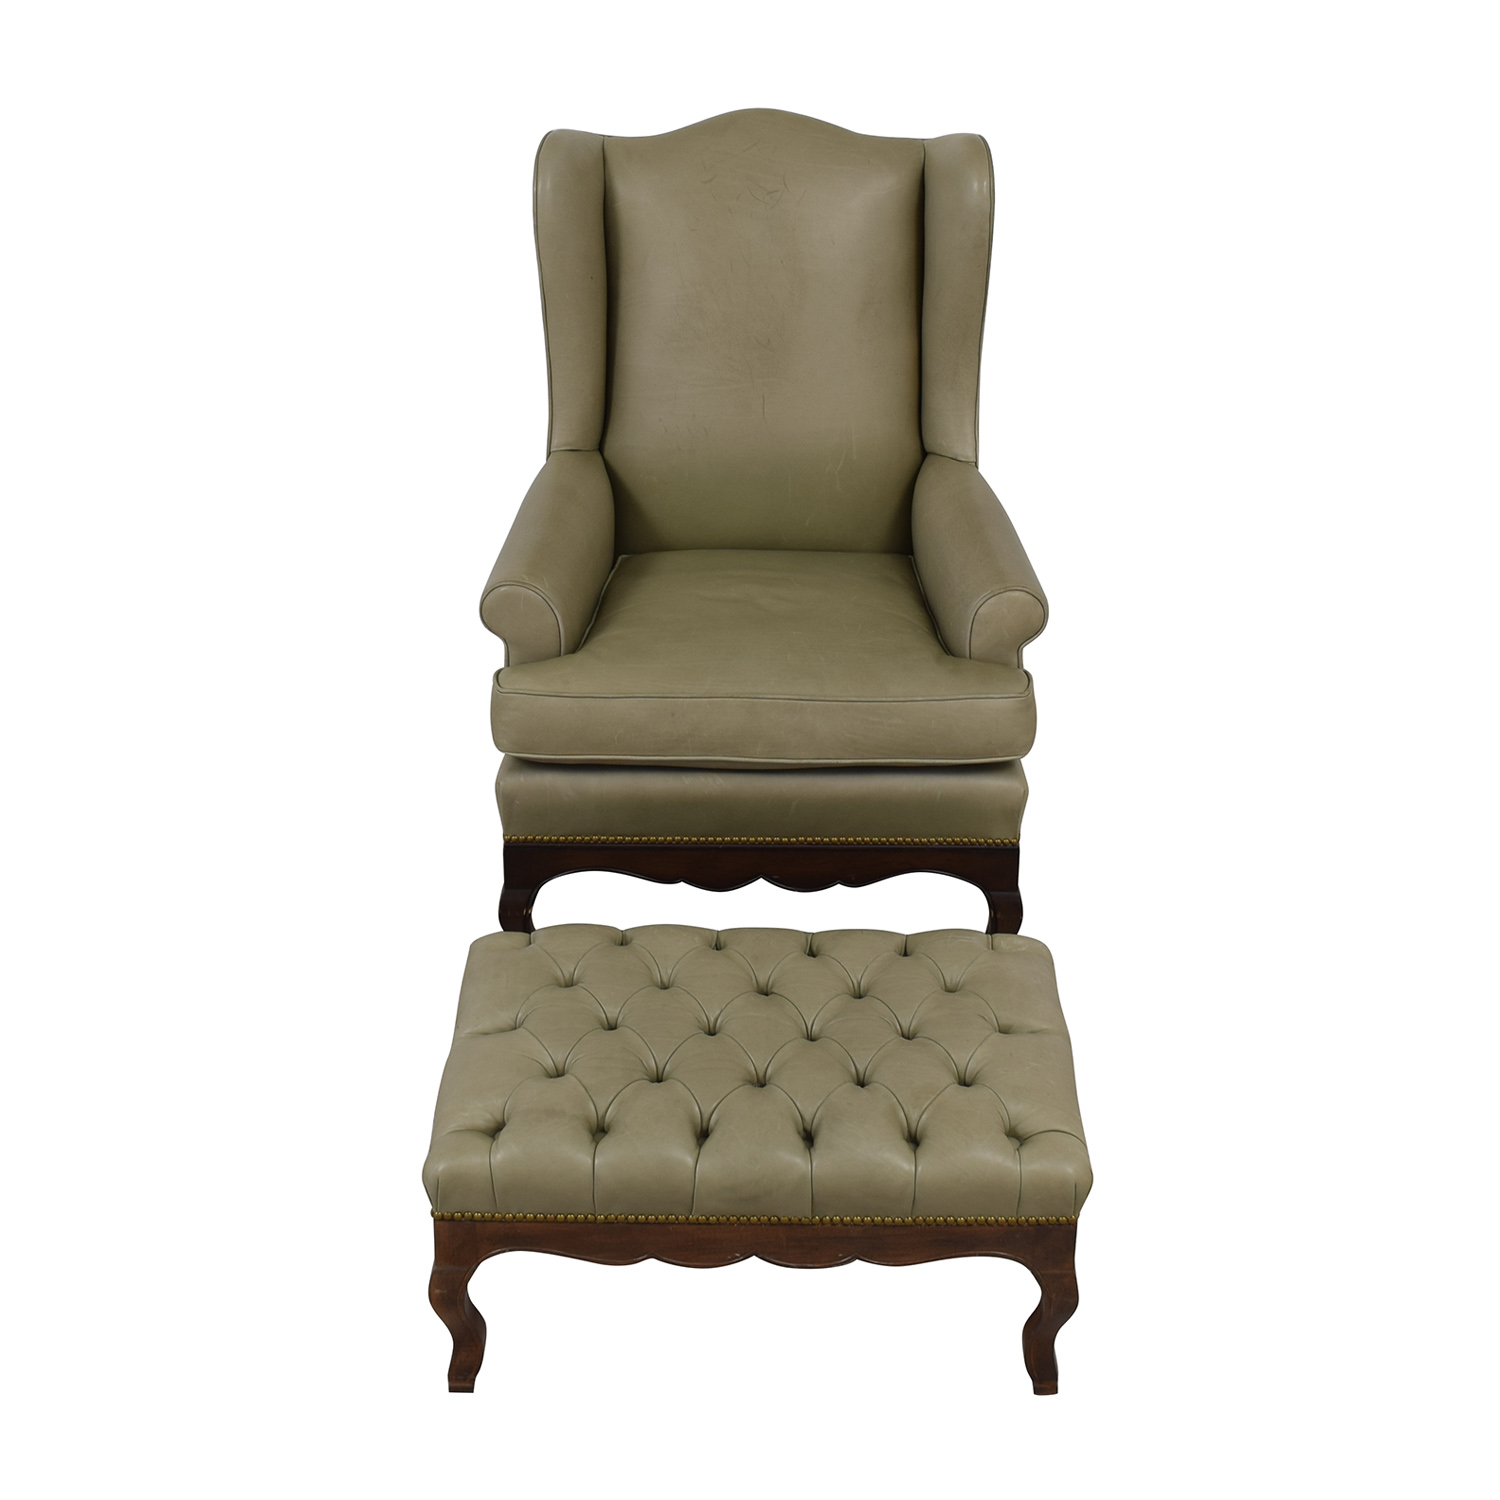 Green Leather Wing Back Chair with Tufted Ottoman used